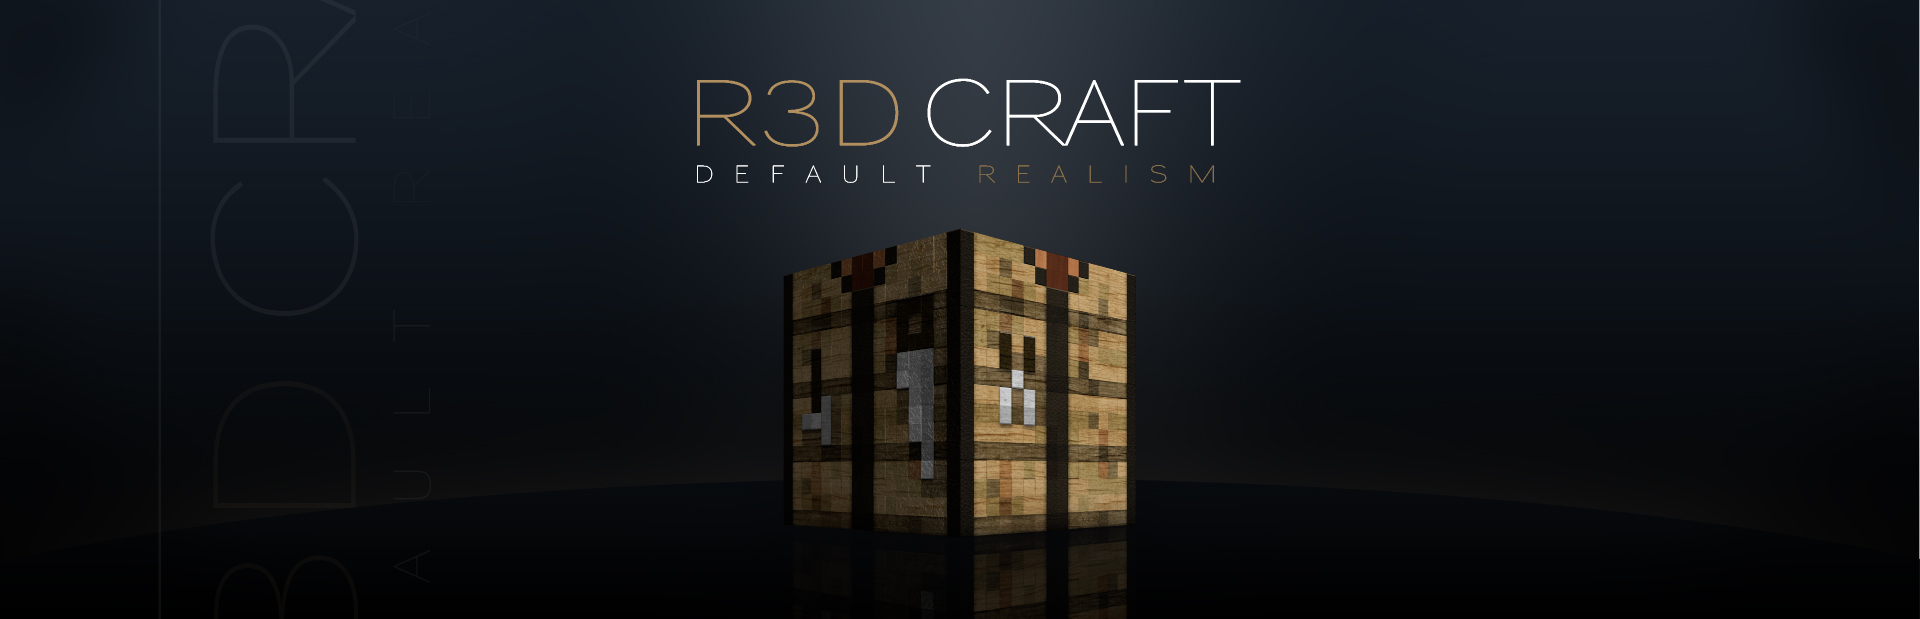 3f398  R3D Craft [1.5.2/1.5.1] [32x] R3D.CRAFT Texture Pack Download